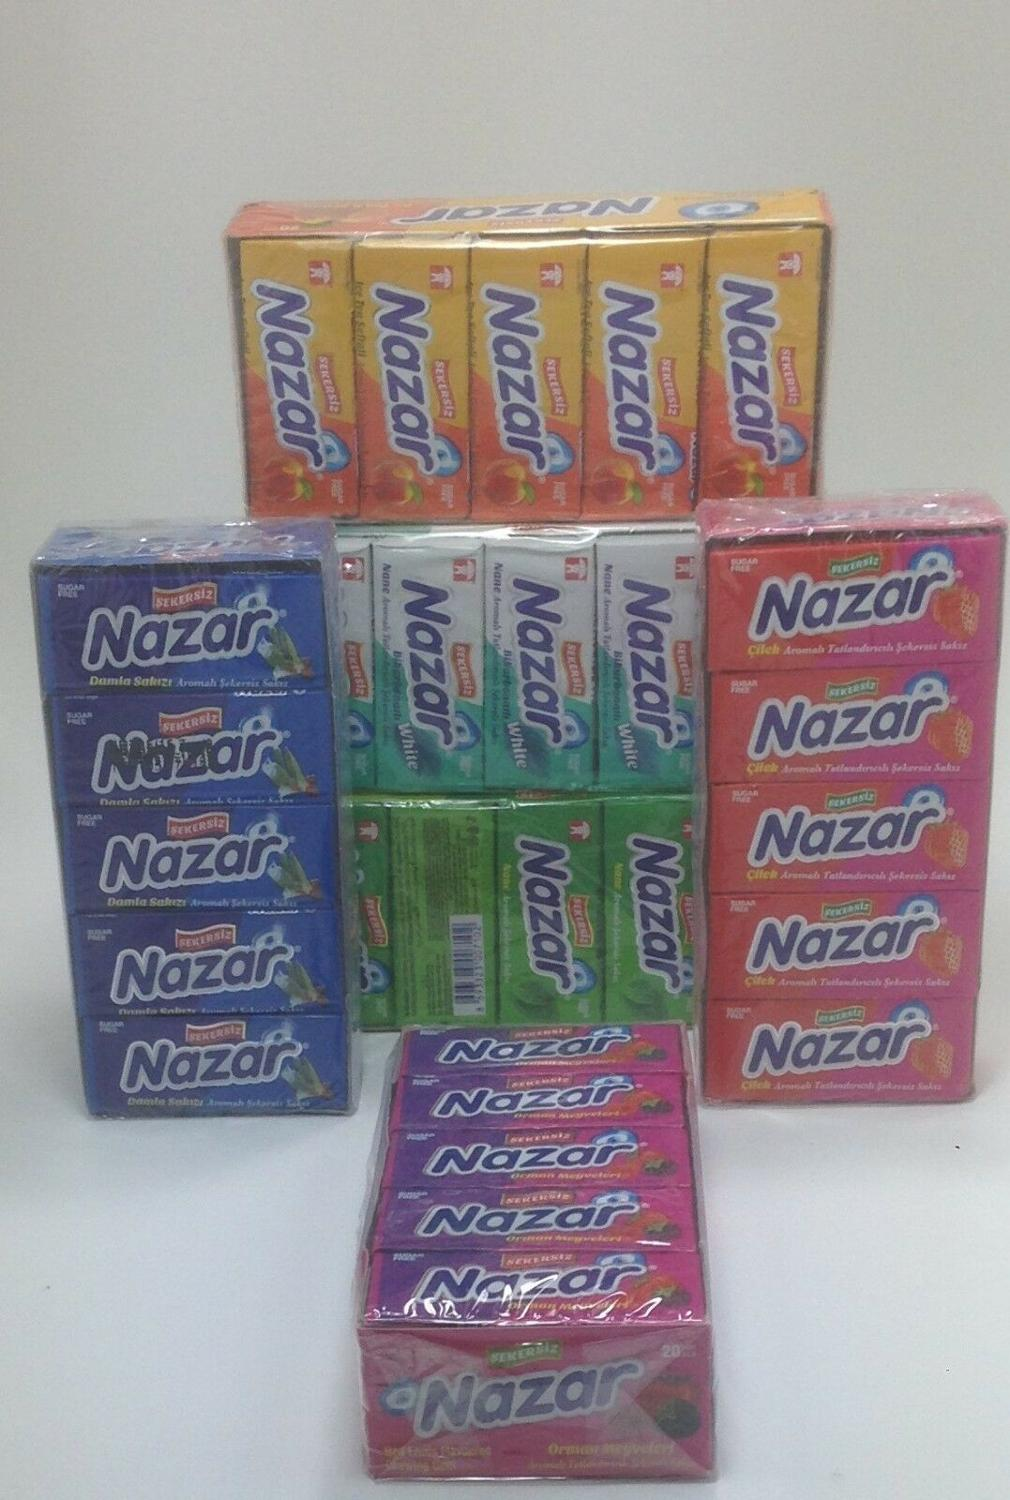 Nazar sugarless chewing gum…